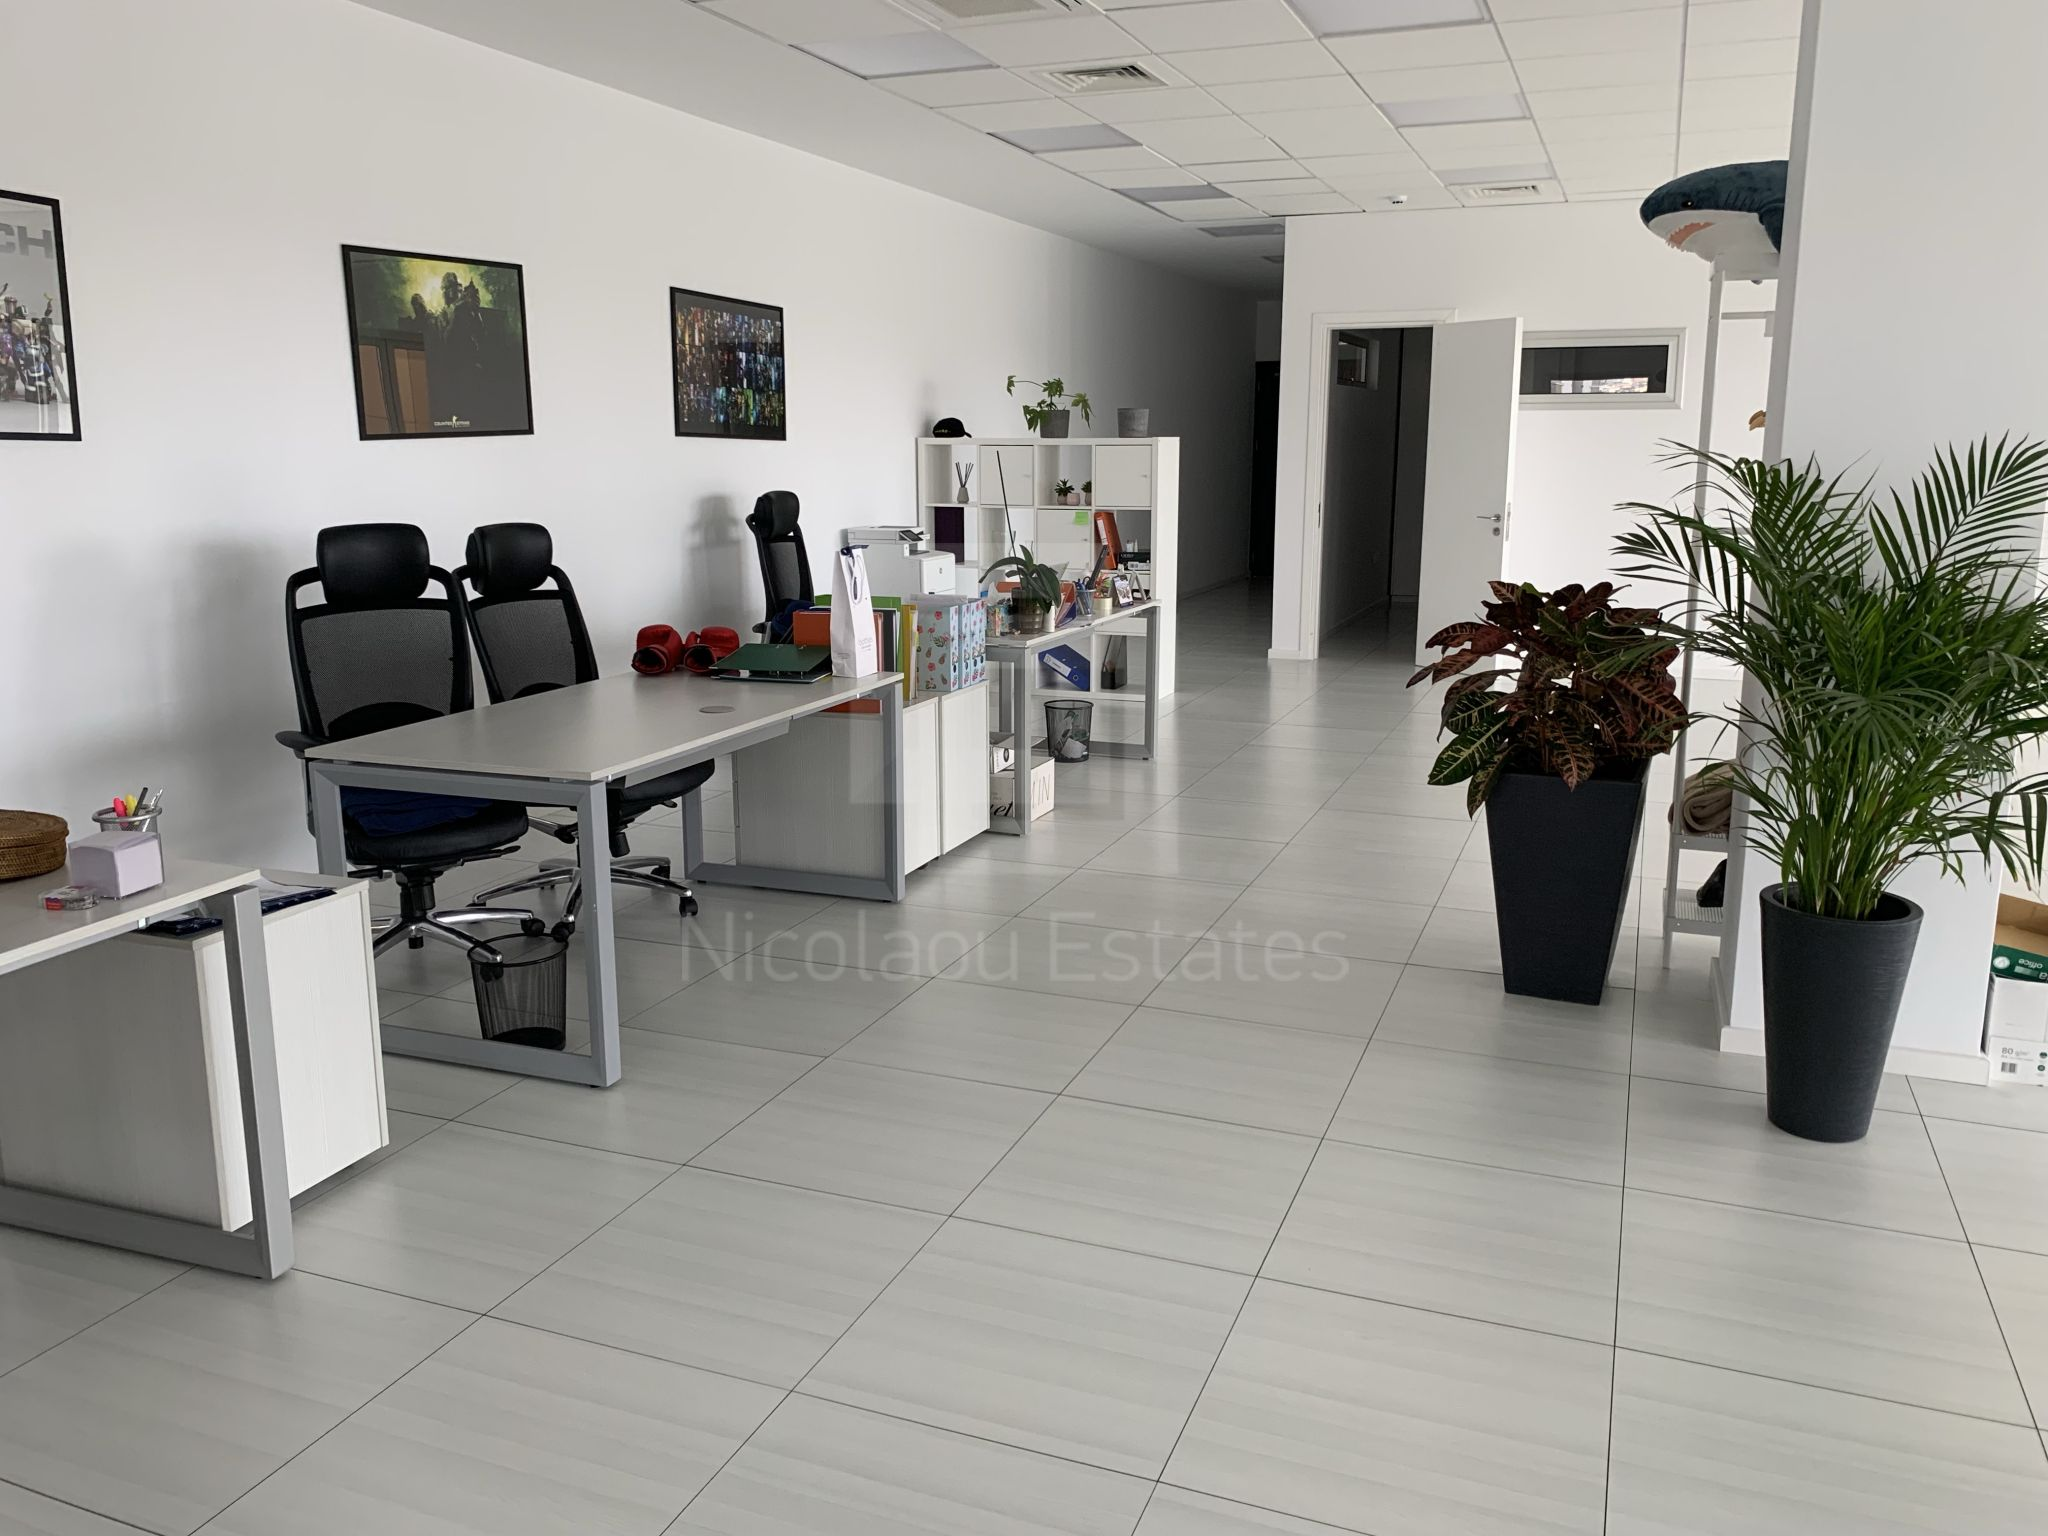 Luxury and high technology offices for rent in Agios Athanasios, Limassol